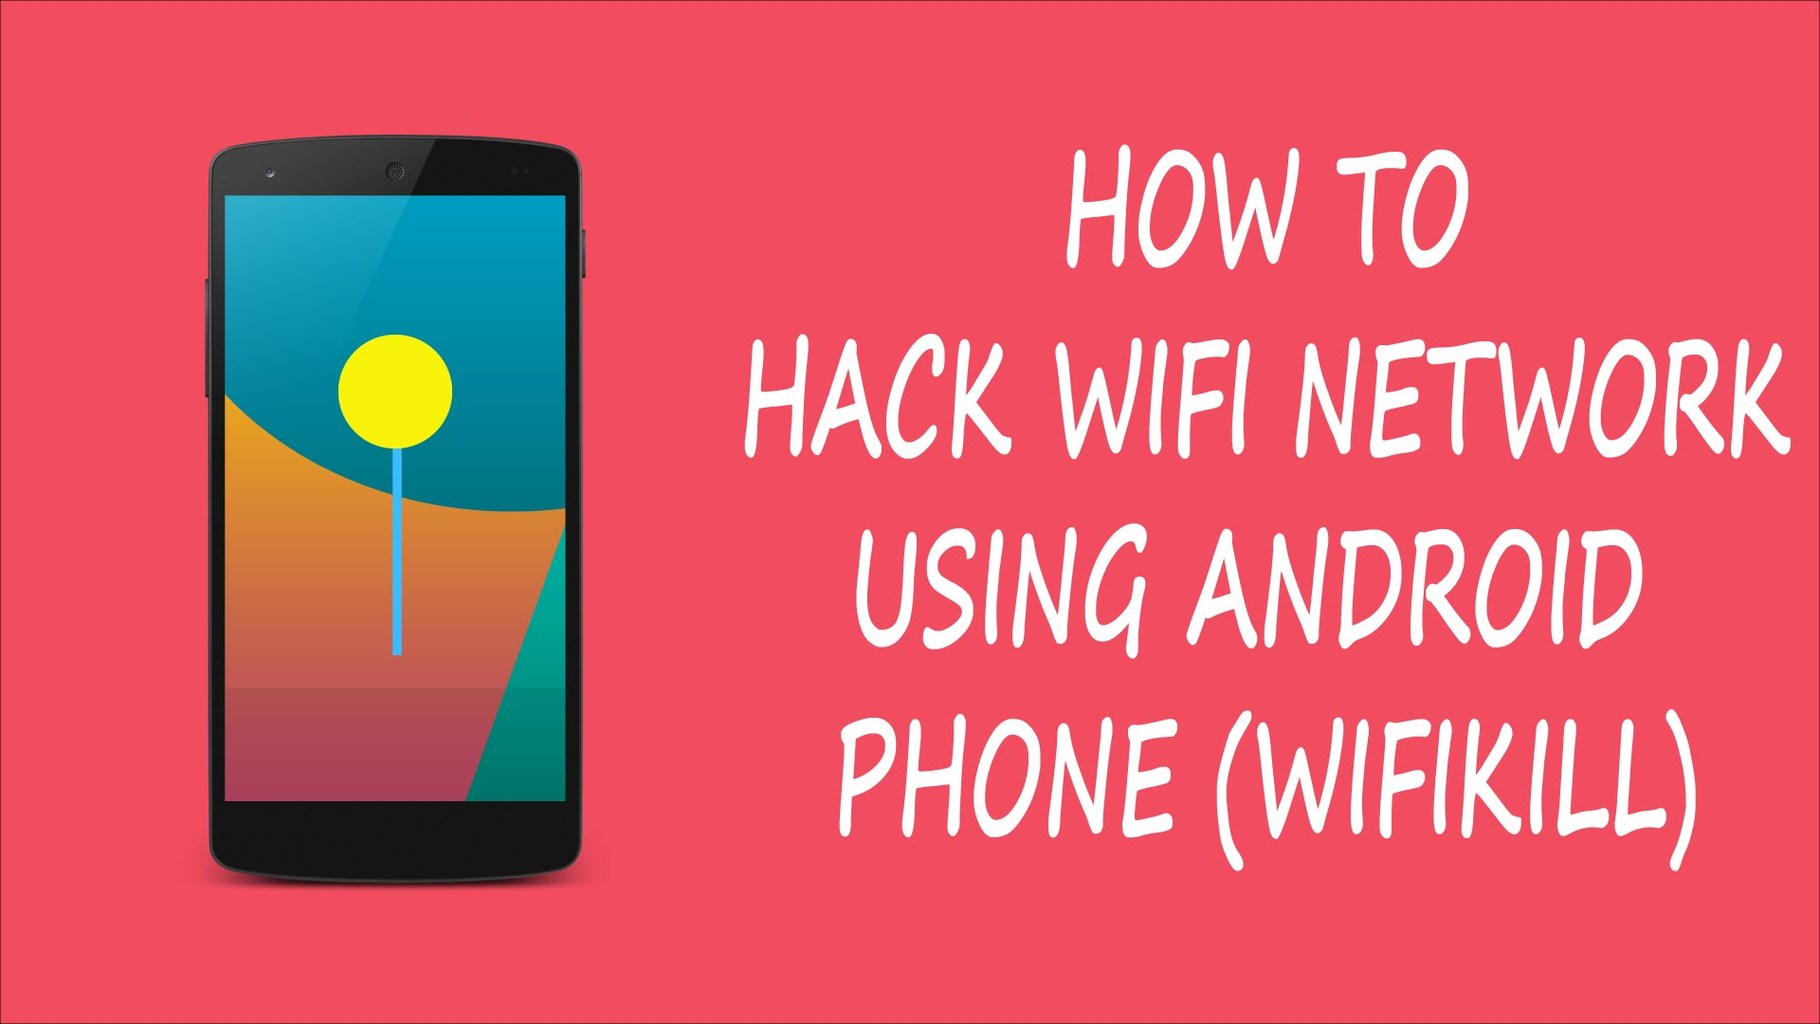 How To Hack Wi-Fi Network Using WiFiKill Android App With In 5 Minutes